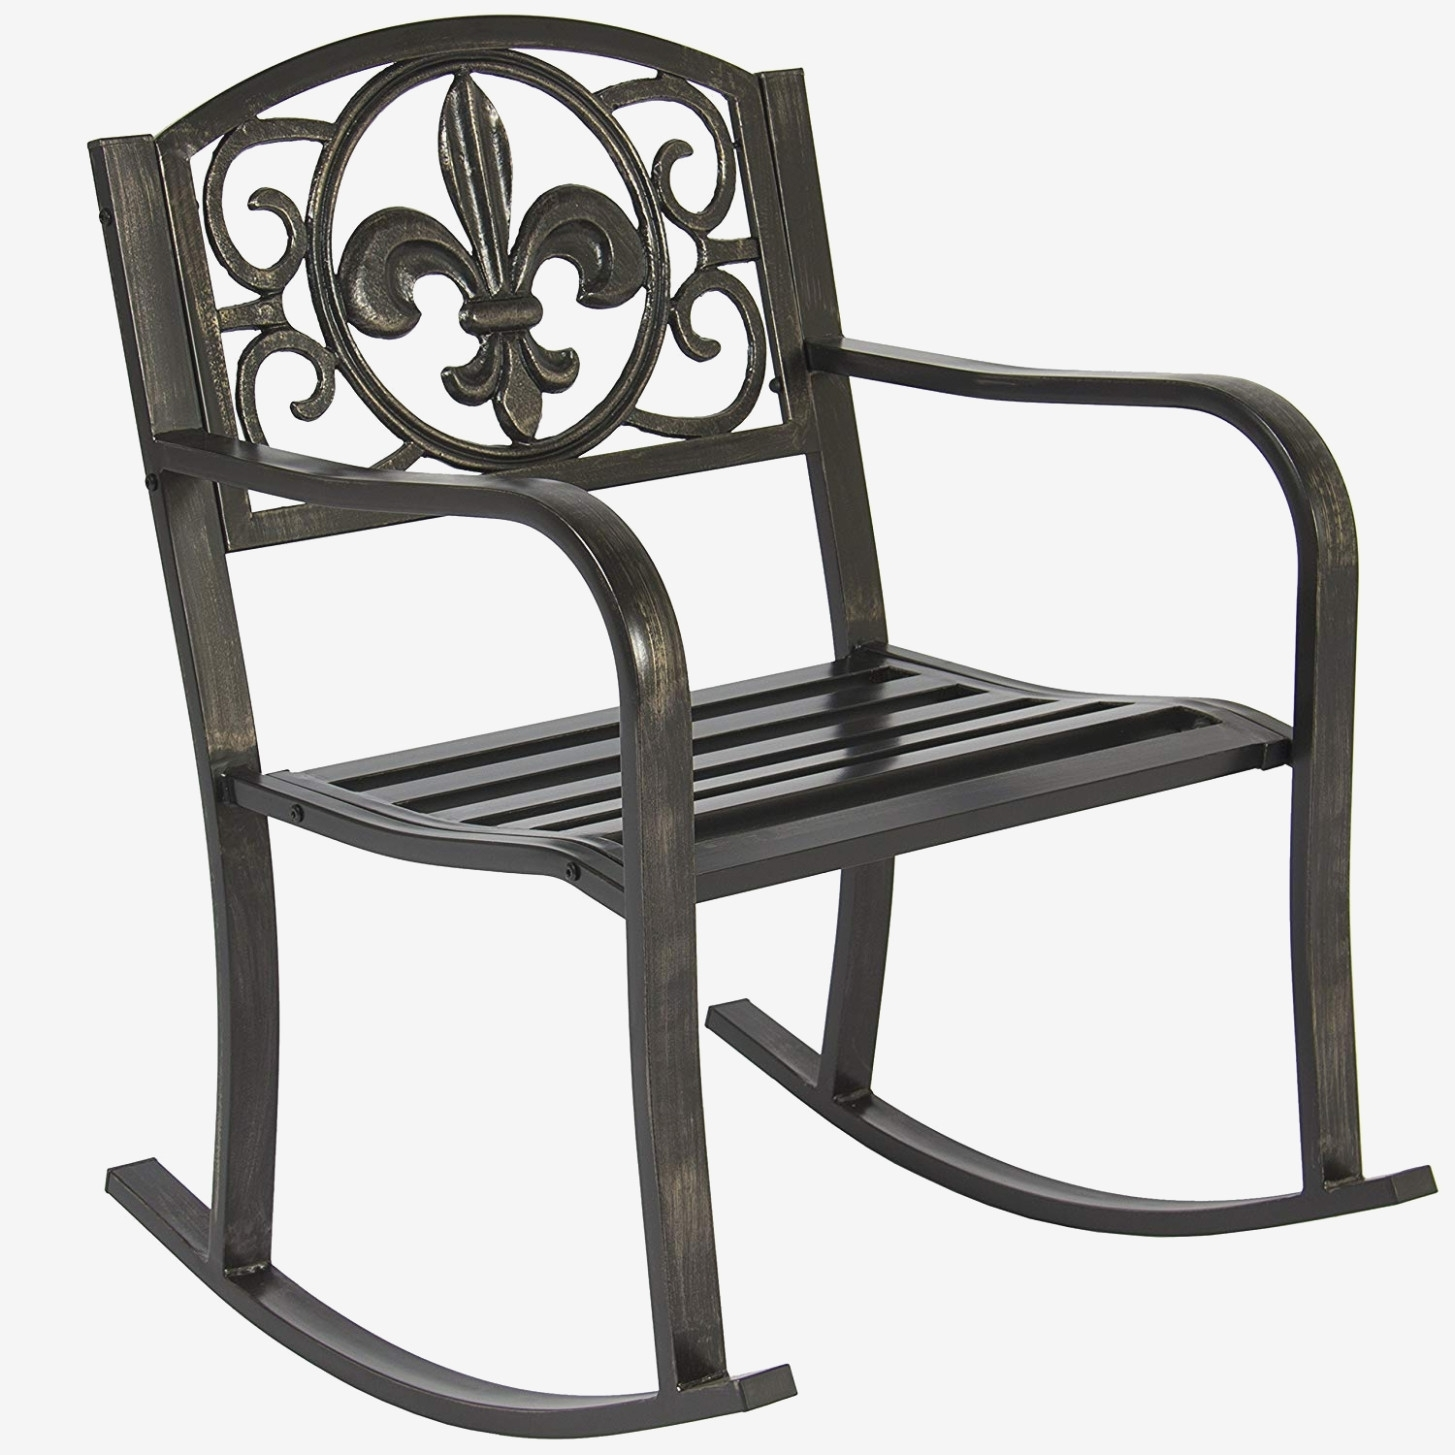 Amazon : Best Choice Products Metal Rocking Chair Seat For Patio Intended For Amazon Rocking Chairs (View 10 of 15)